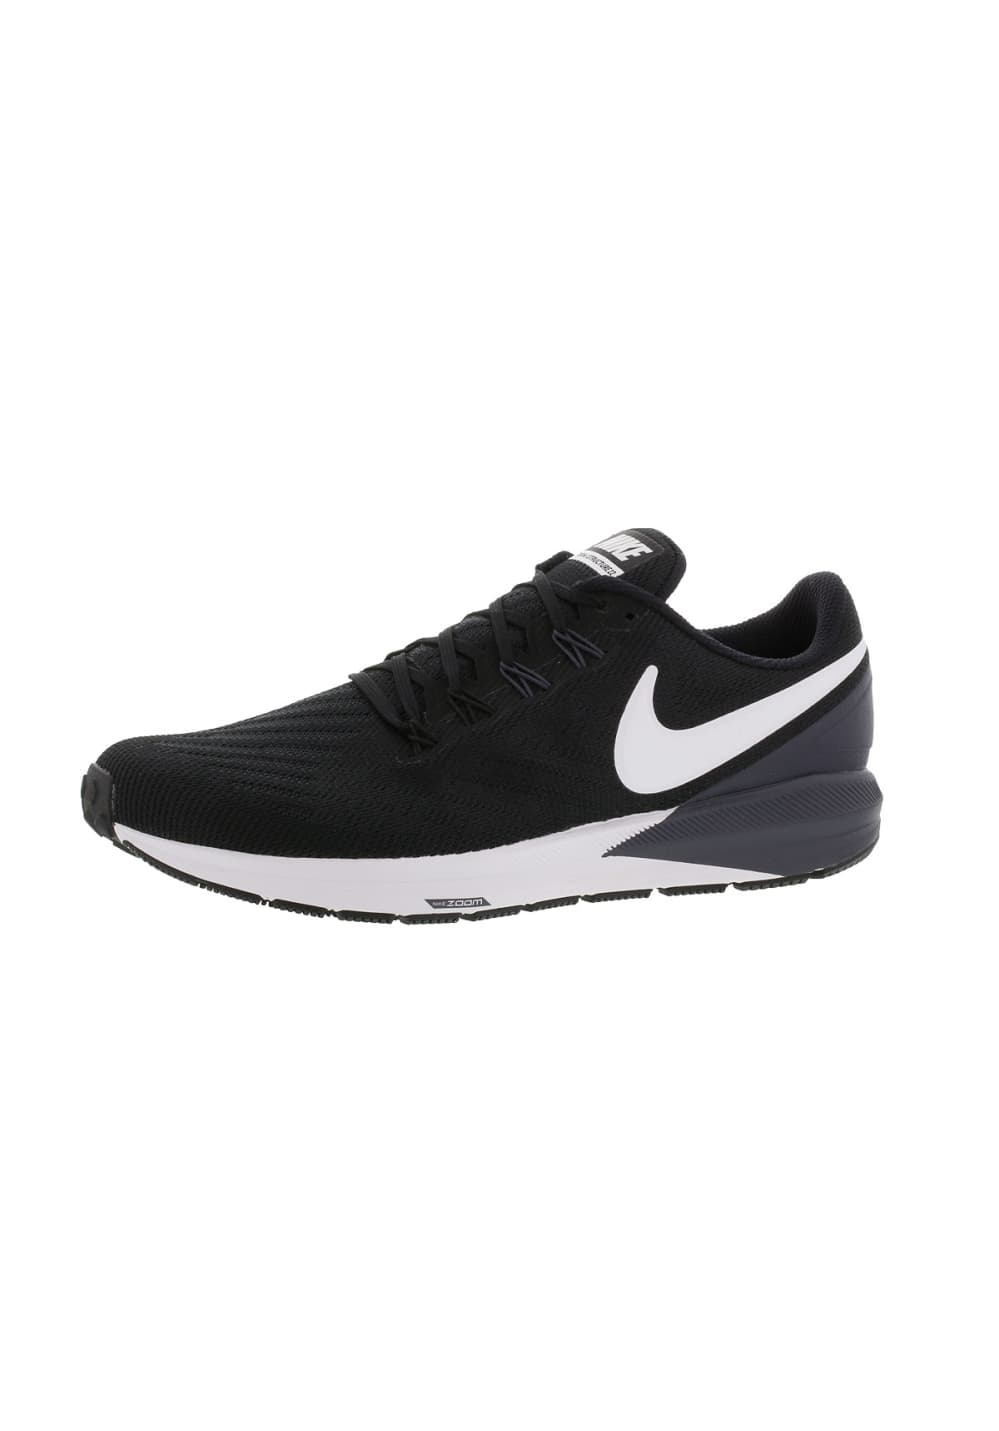 Noir 22 Femme Structure Zoom Air Chaussures Running Nike Pour 29EDIWHY